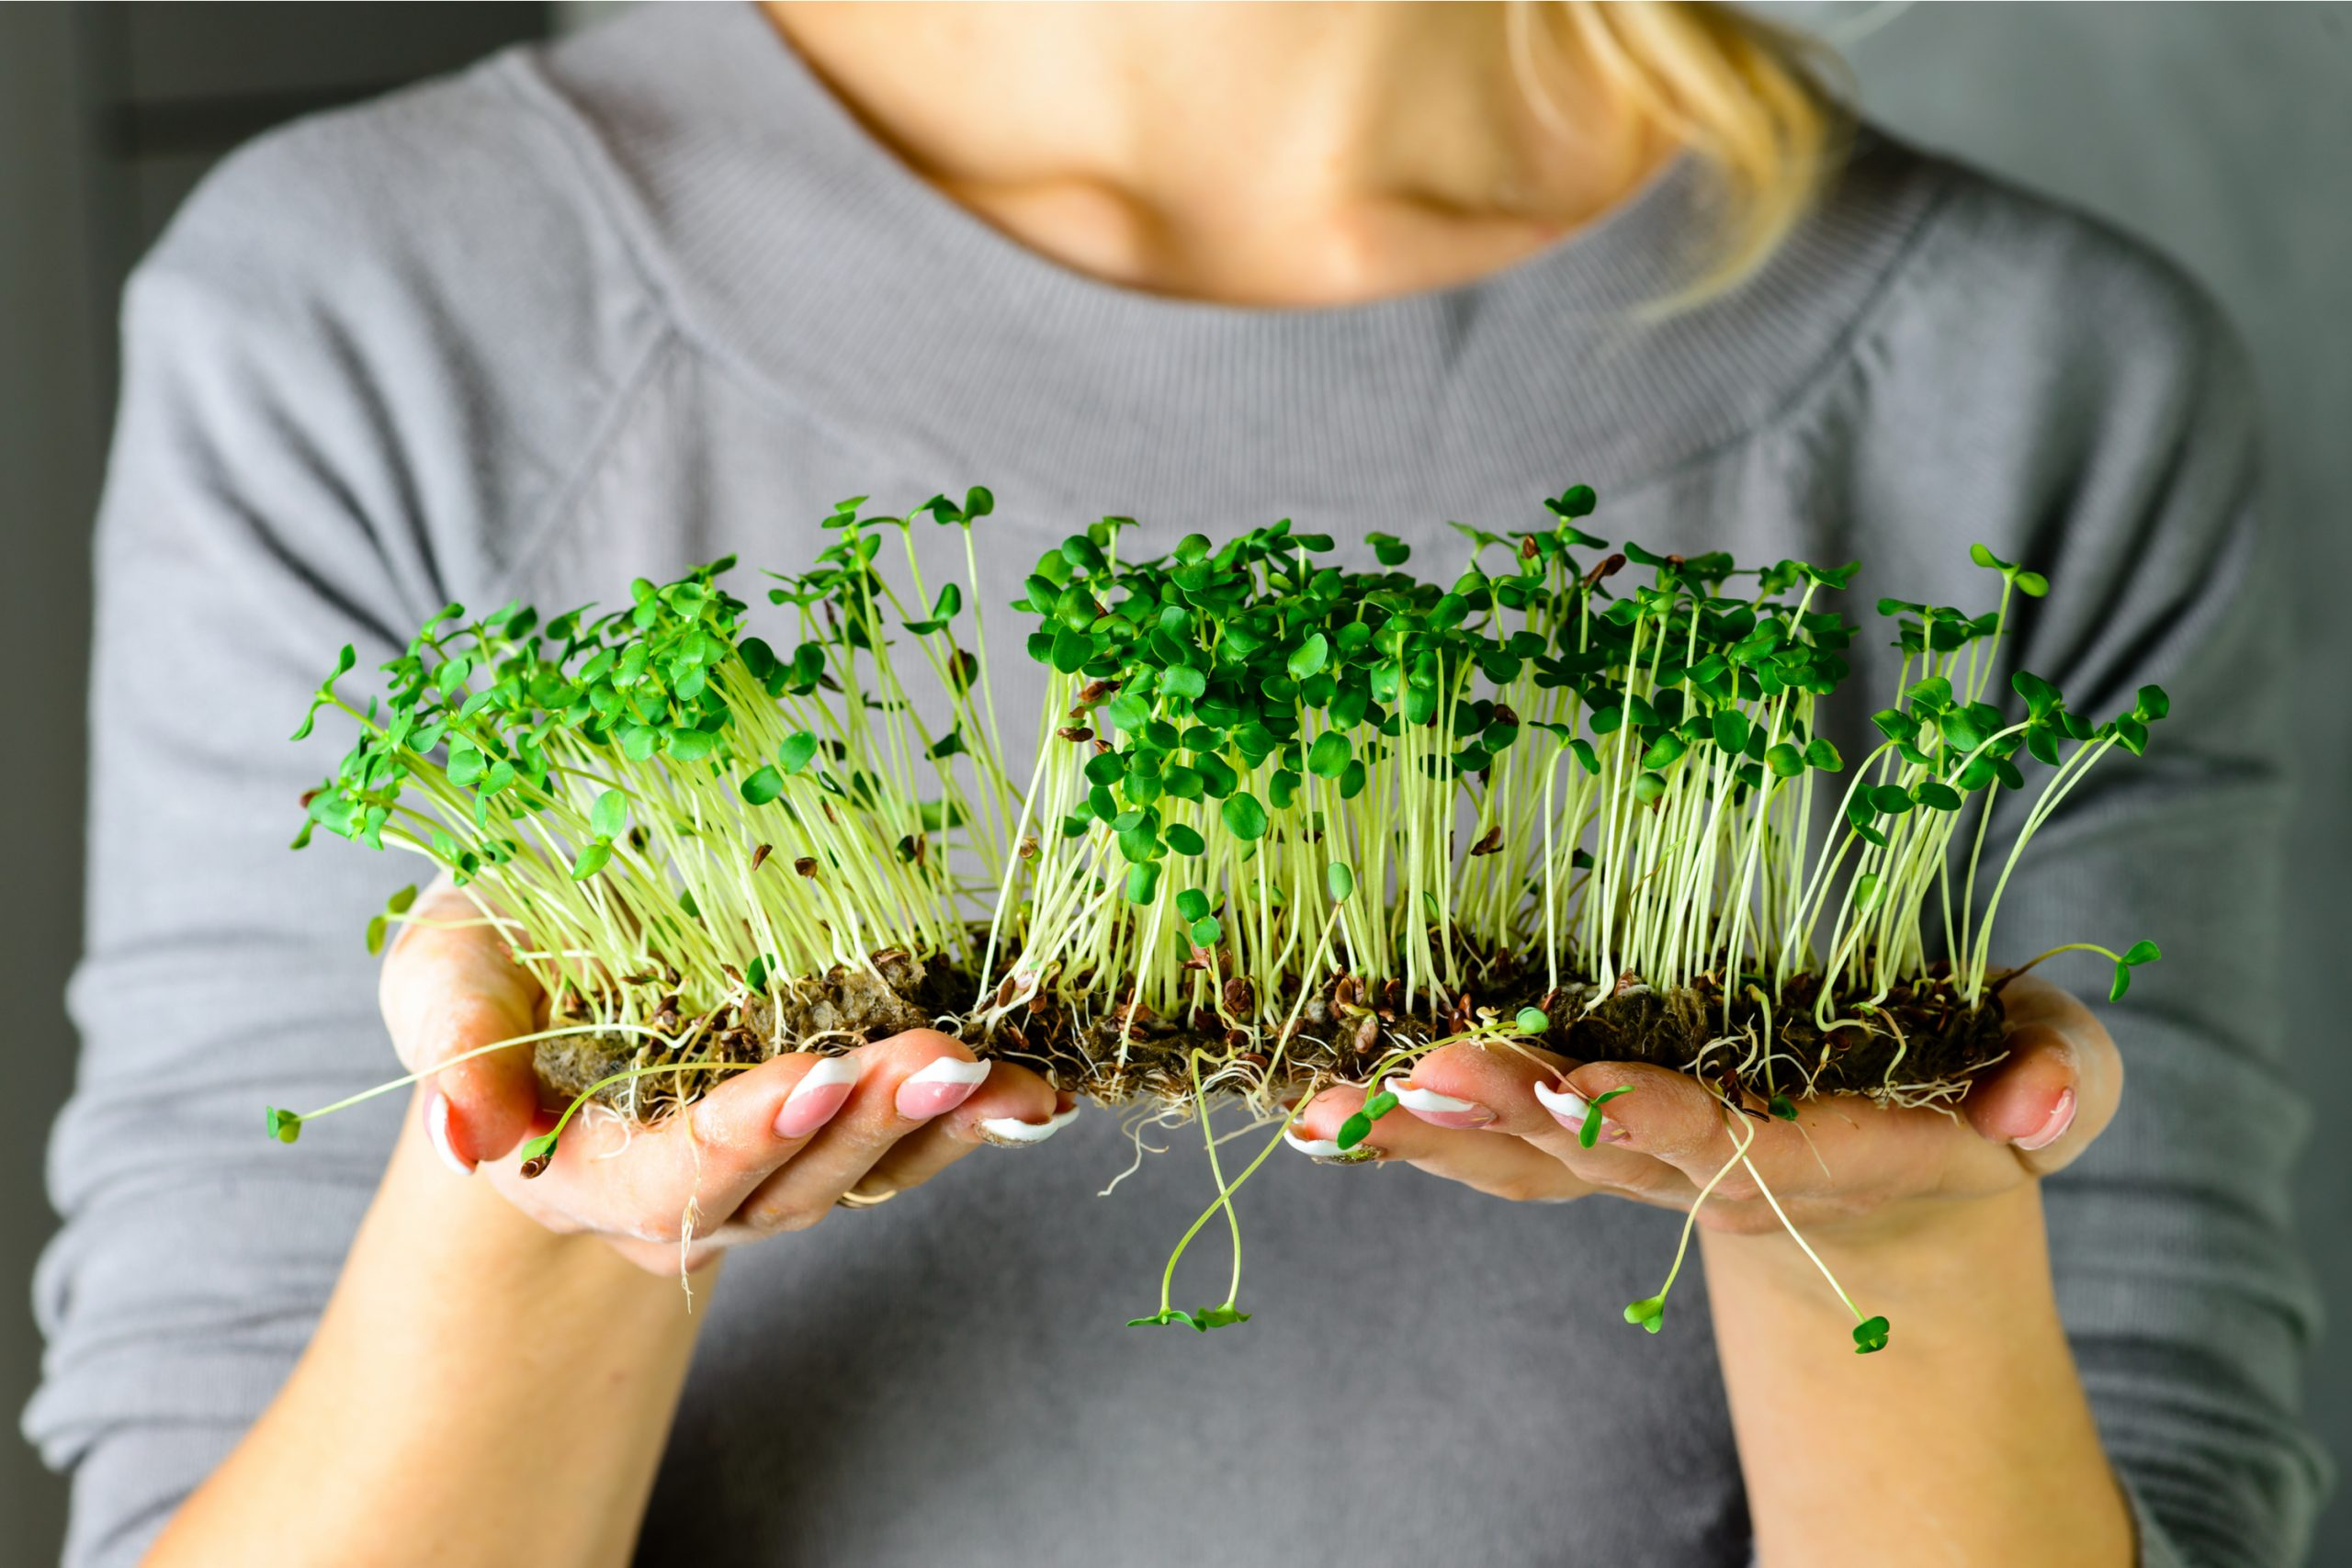 Get ready for the warmer months ahead with a few of these super easy ideas for growing microgreens indoors. You can even get kits for beginners on amazon.